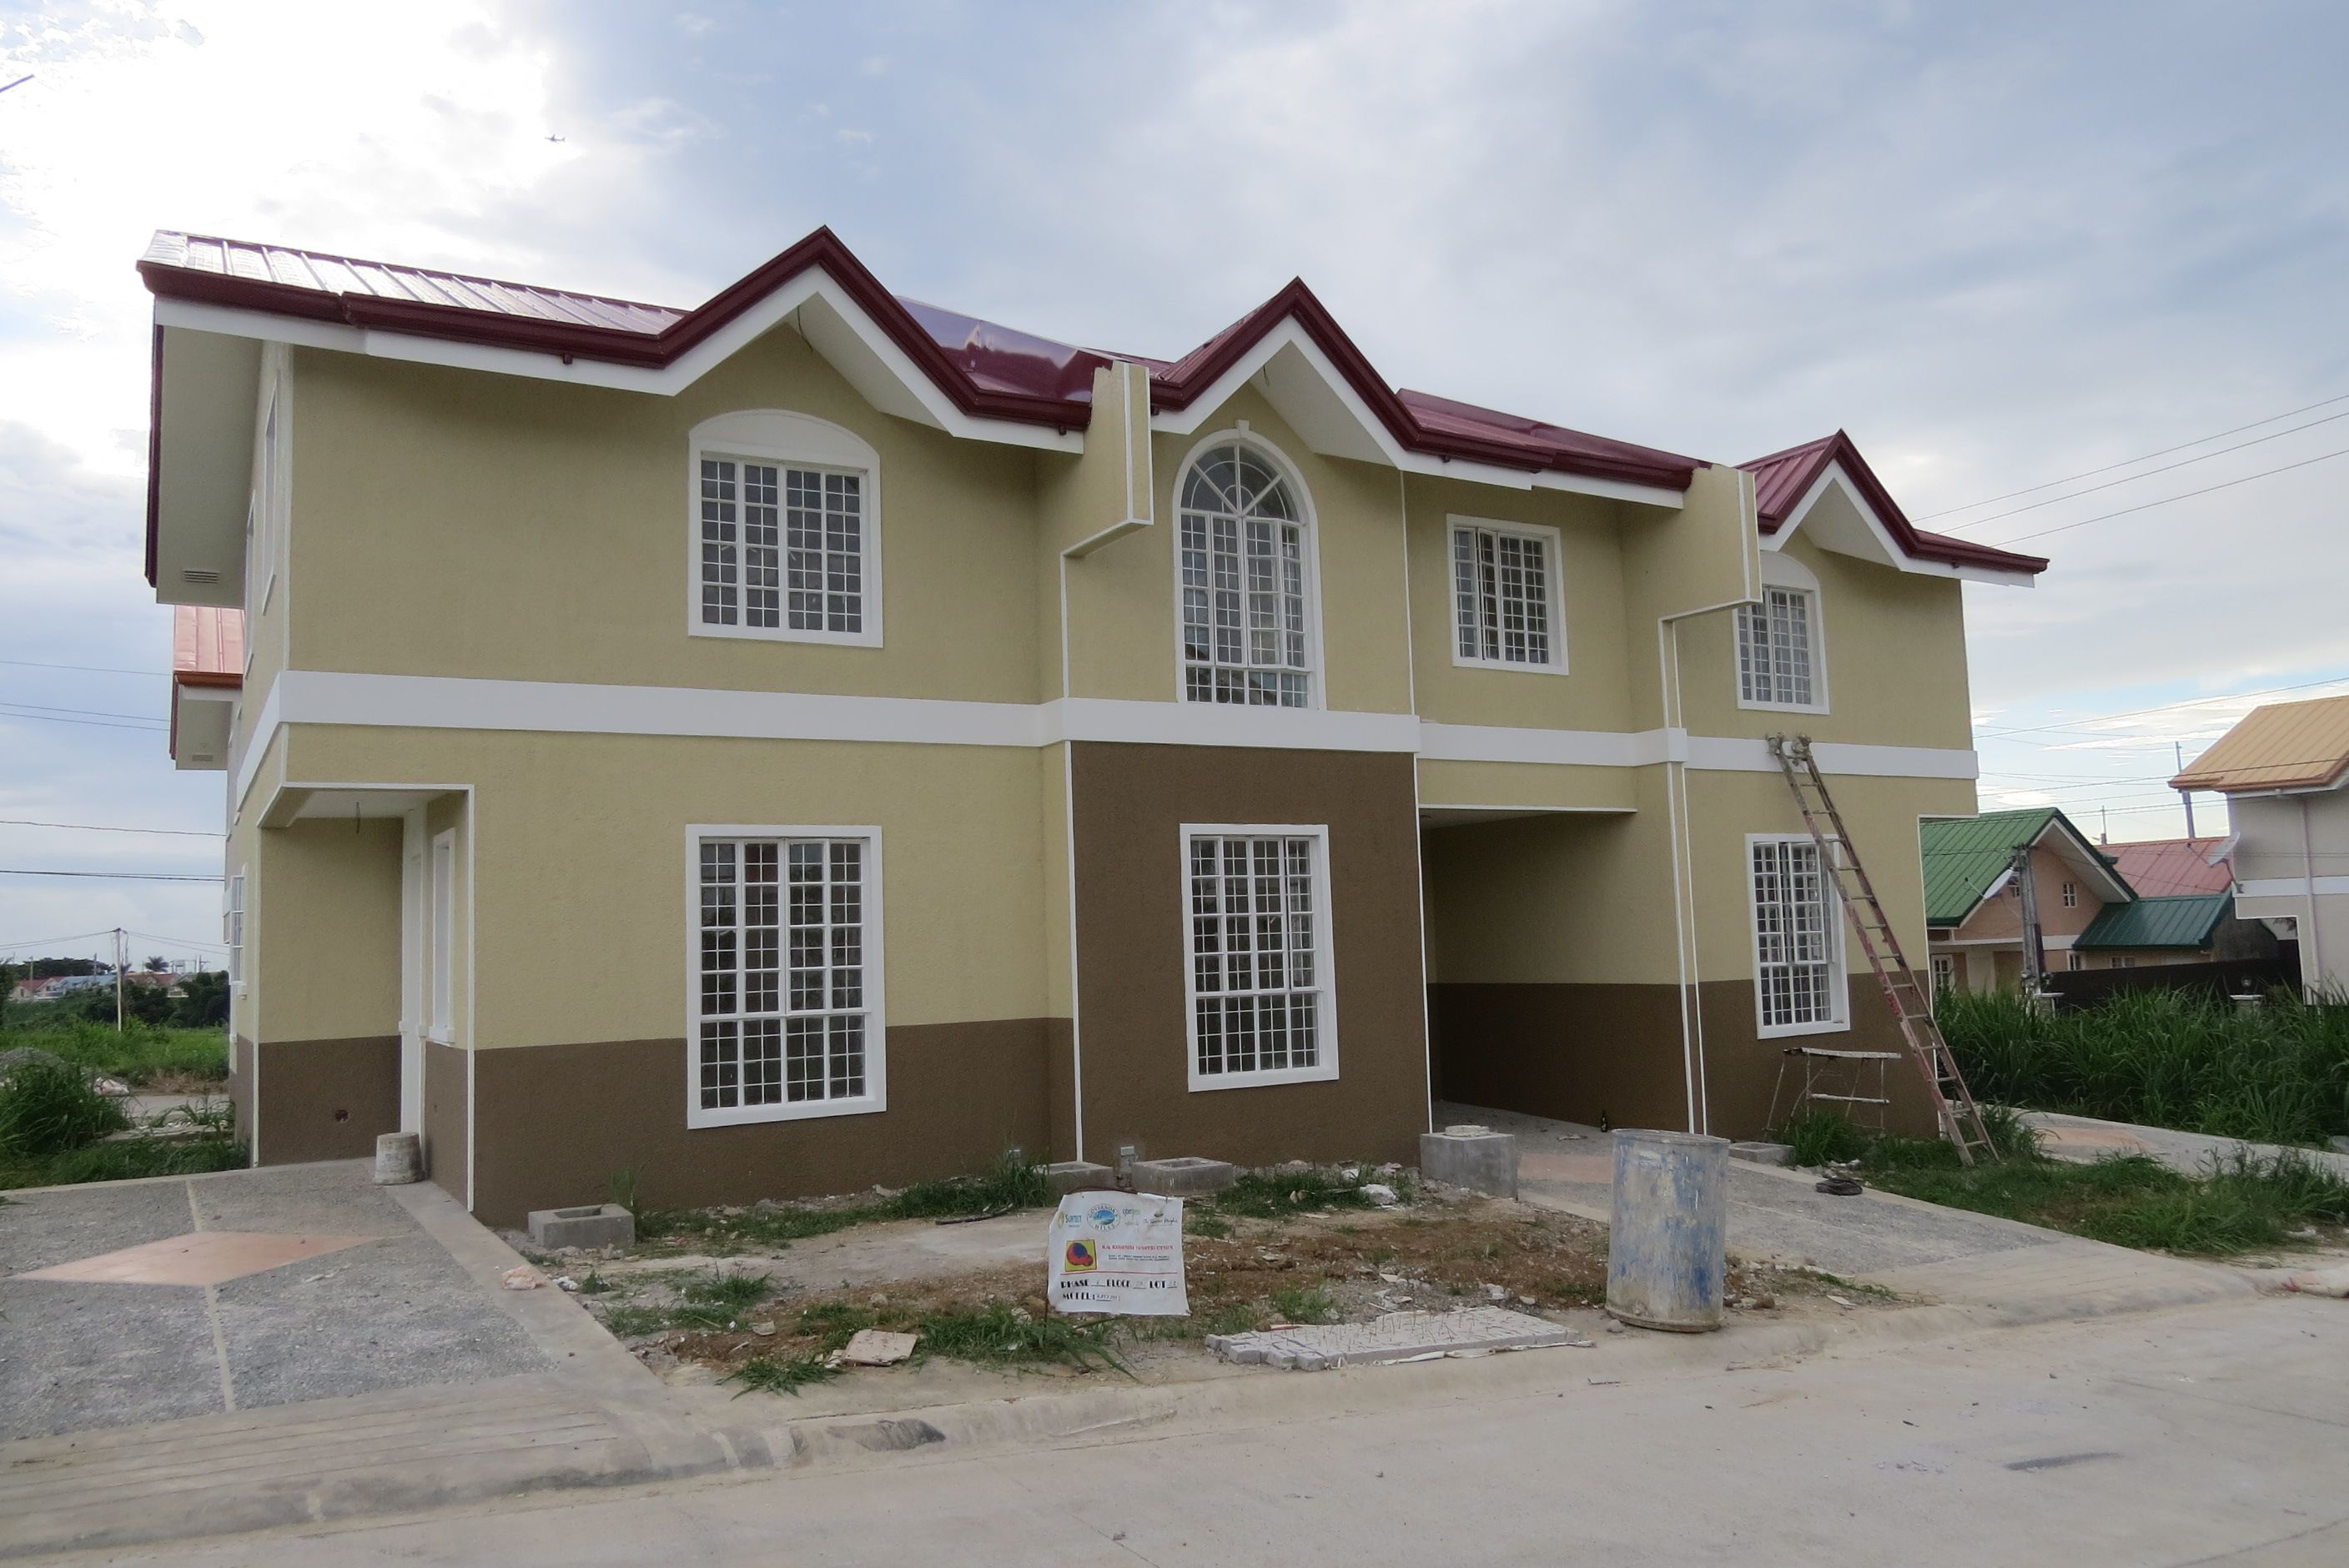 TRIPLEX TOWN HOMES RUSH FOR SALE BRAND NEW --- ON GOING